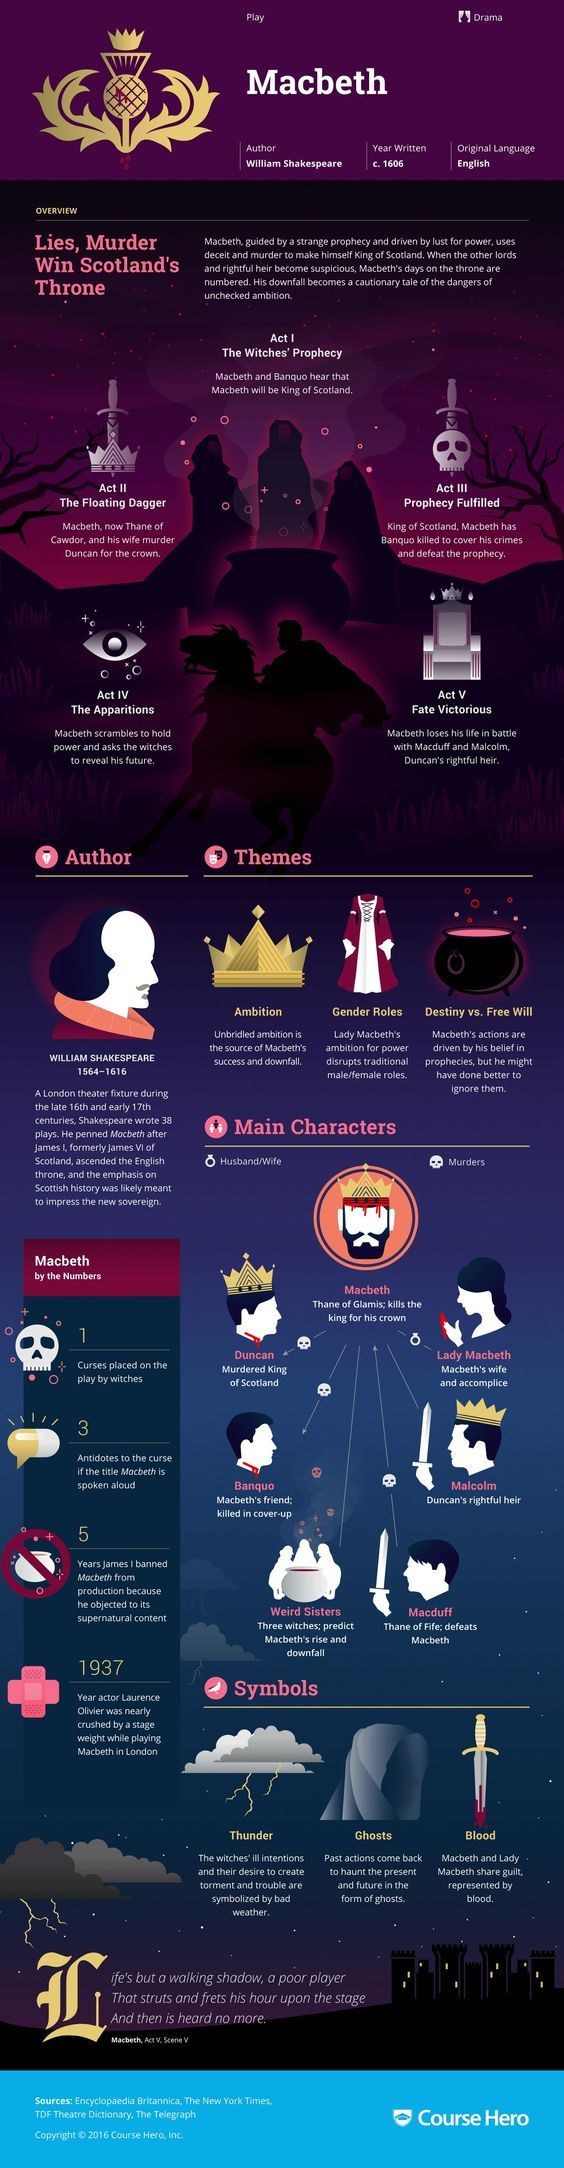 top ideas about macbeth william shakespeare awesome how to write a macbeth essay structure steps